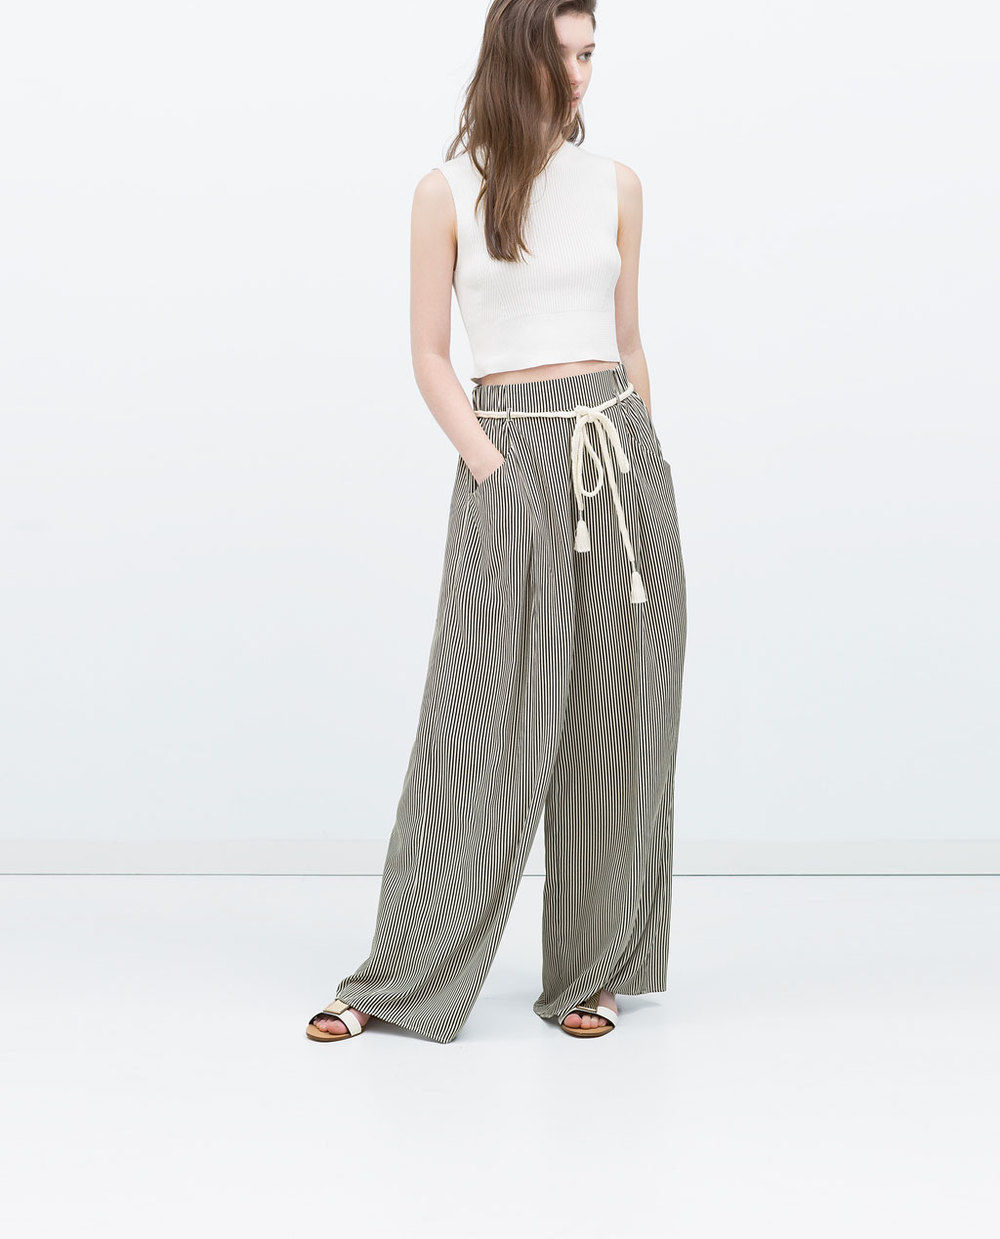 STRIPPED TROUSER 25.99 USD